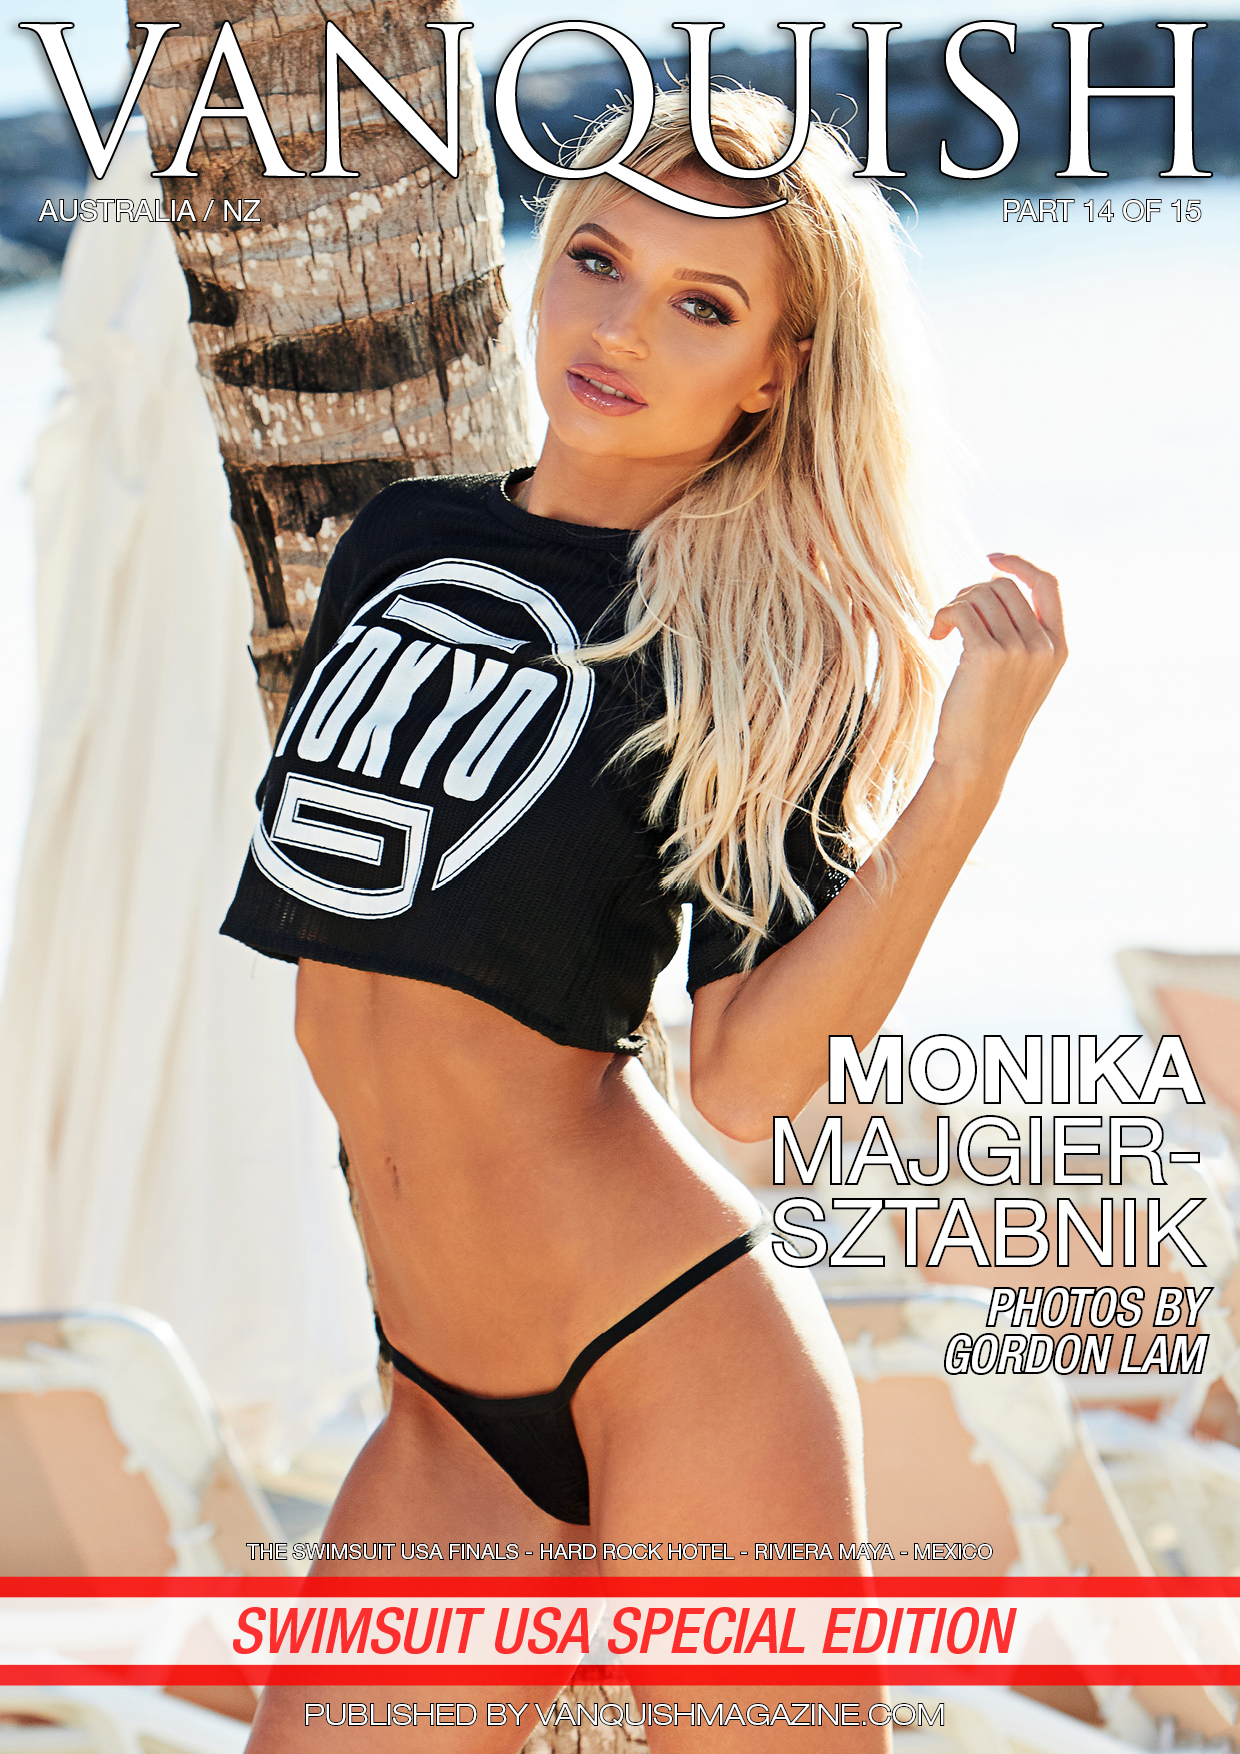 Vanquish Magazine – Swimsuit Usa – Part 14 – Monika Majgier-sztabnik